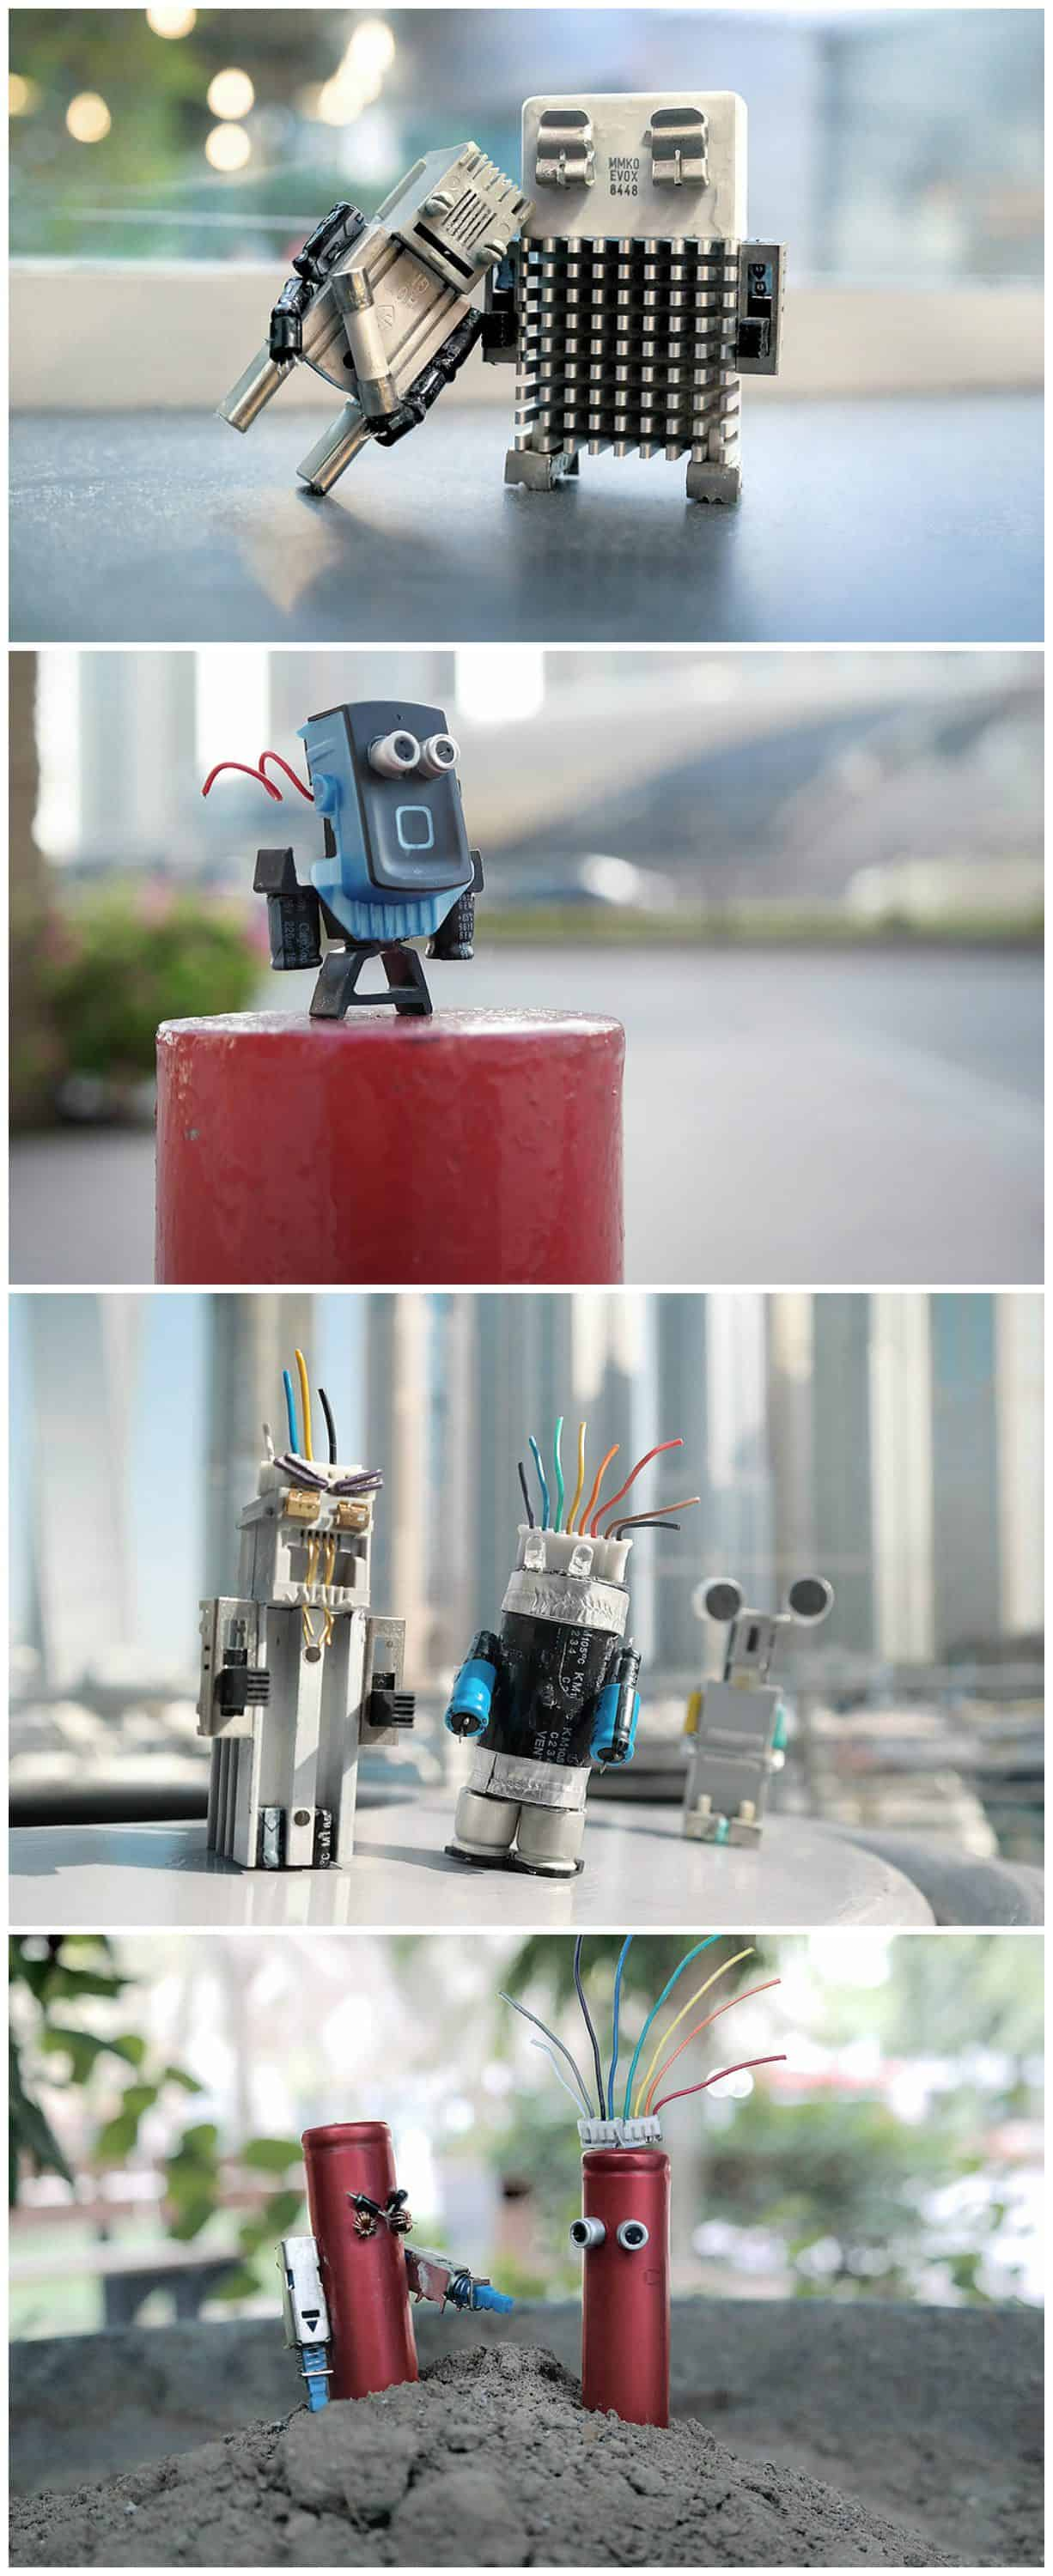 Make Art Not Waste Recycled Characters Out Of Electronic